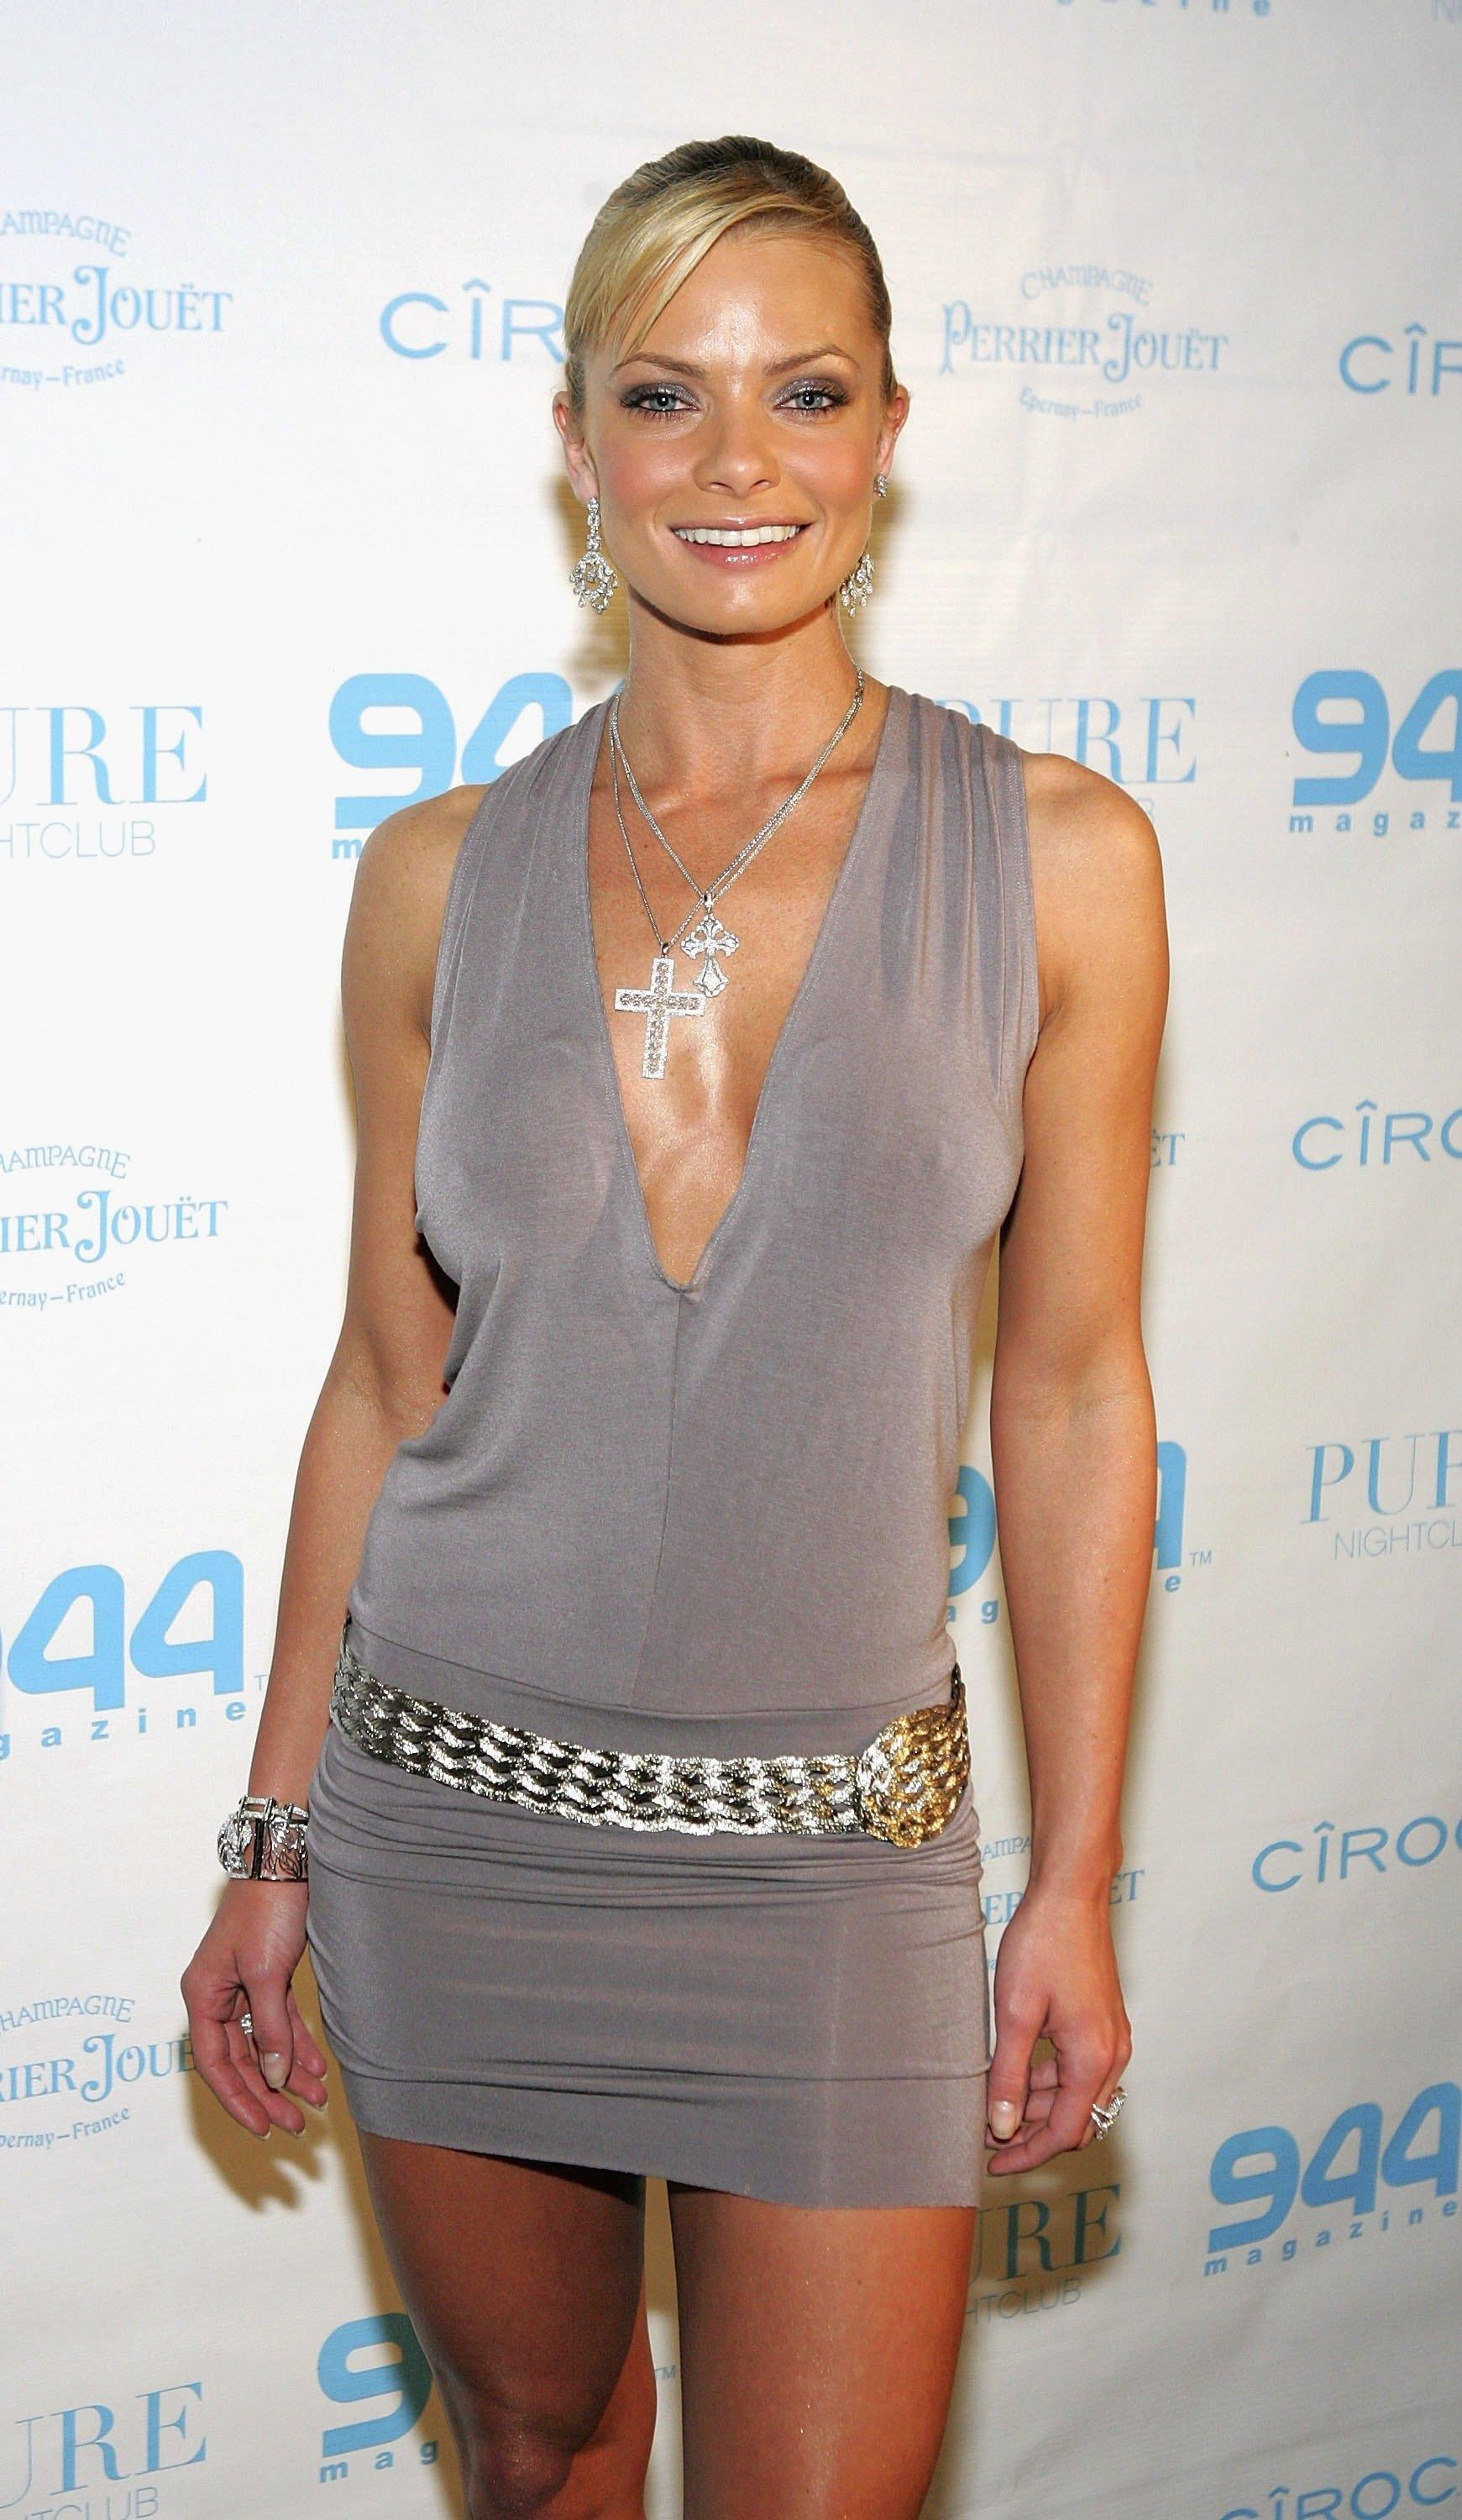 Jaime Pressly Nude Naked Pics And Videos Imperiodefamosas